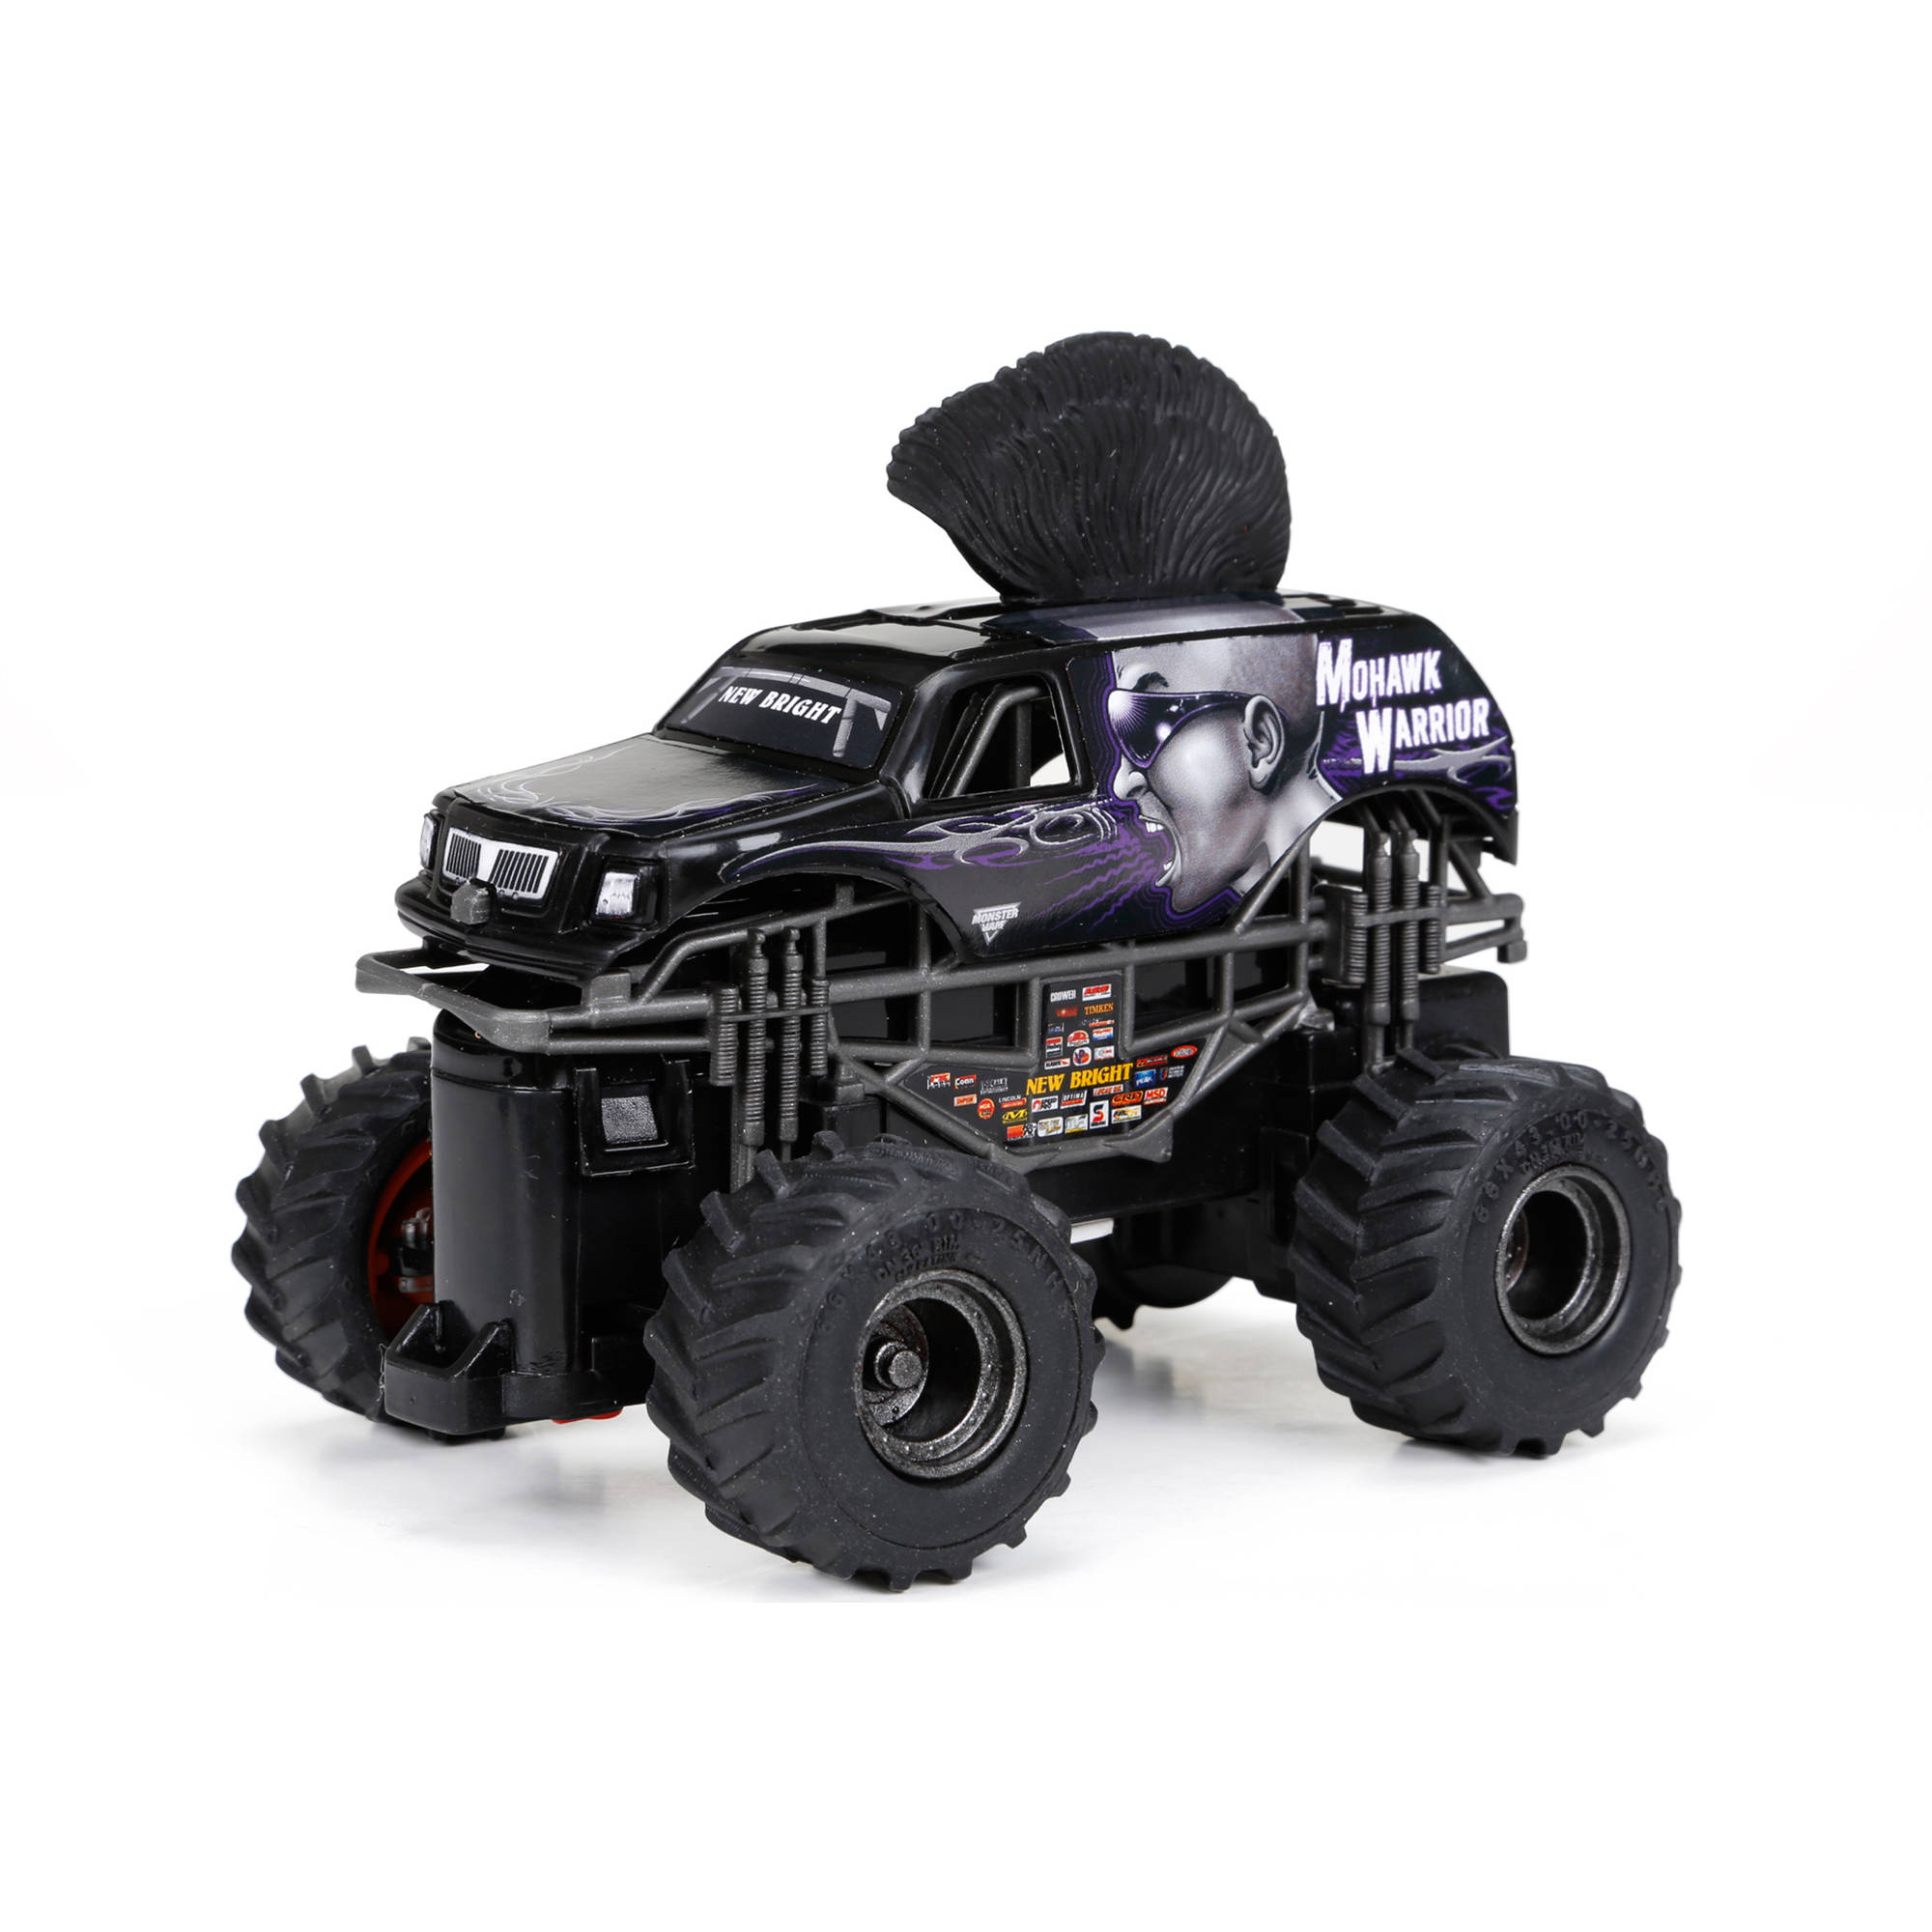 1:43 Full-Function Monster Jam Mini Mohawk Warrior R/C Car, Black